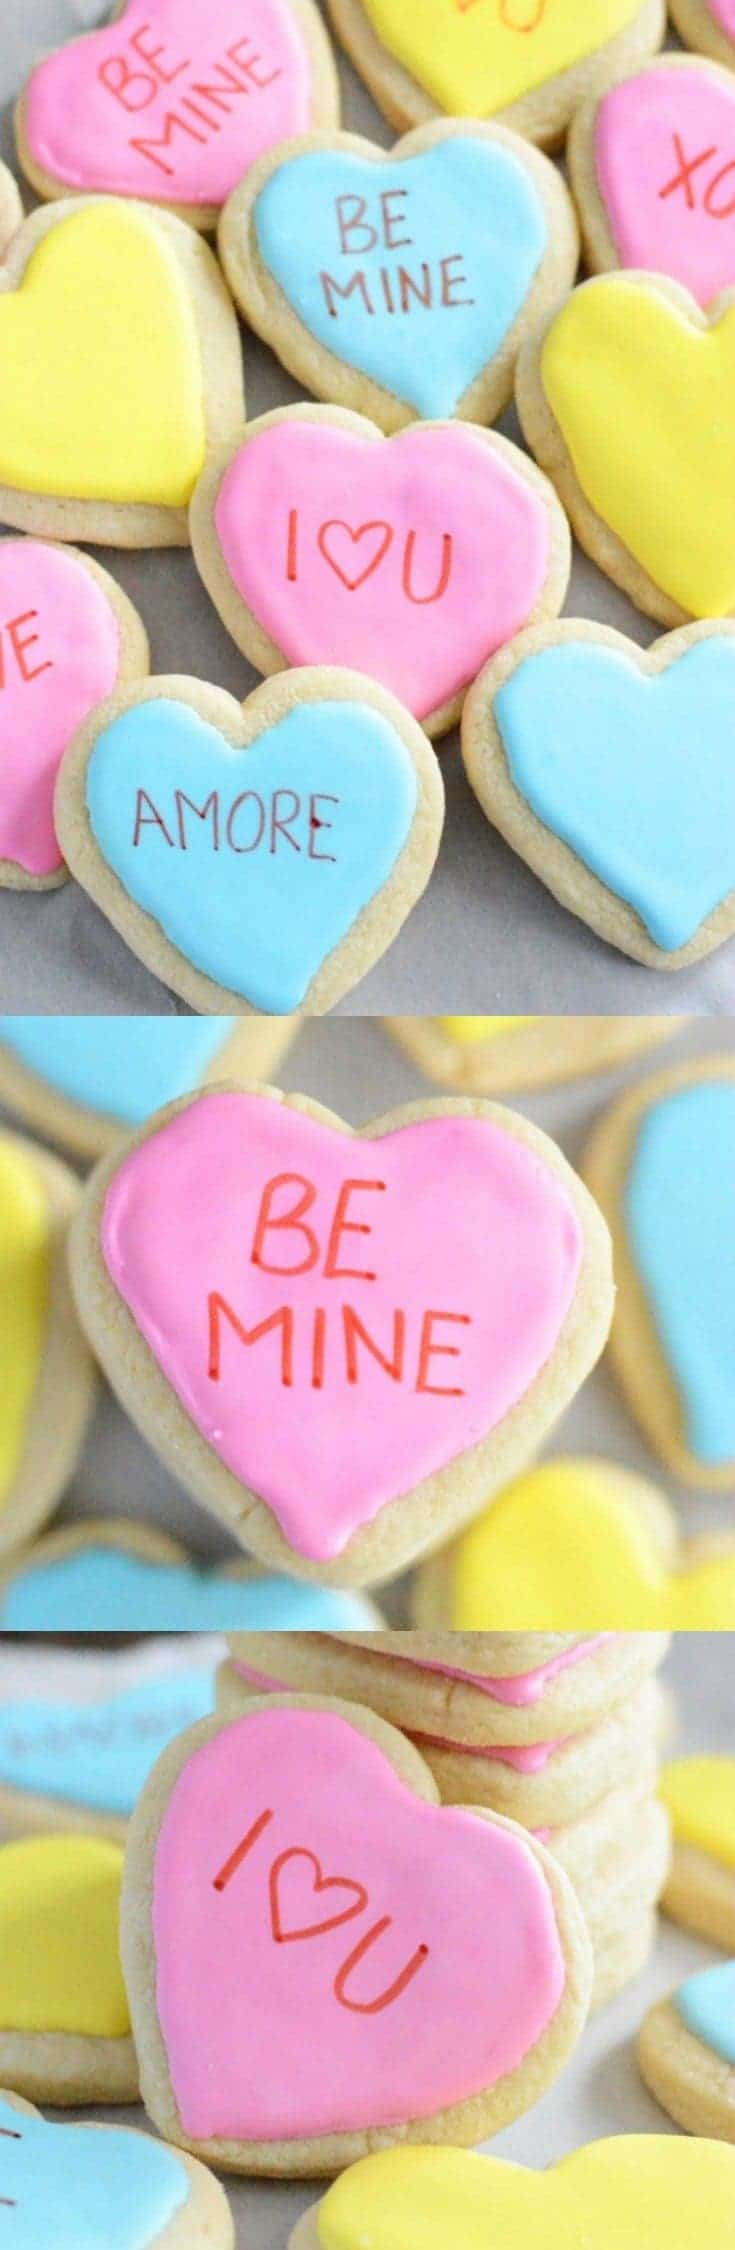 Gluten Free Conversation Heart Cookies (also dairy free) from What The Fork Food Blog | whattheforkfoodblog.com